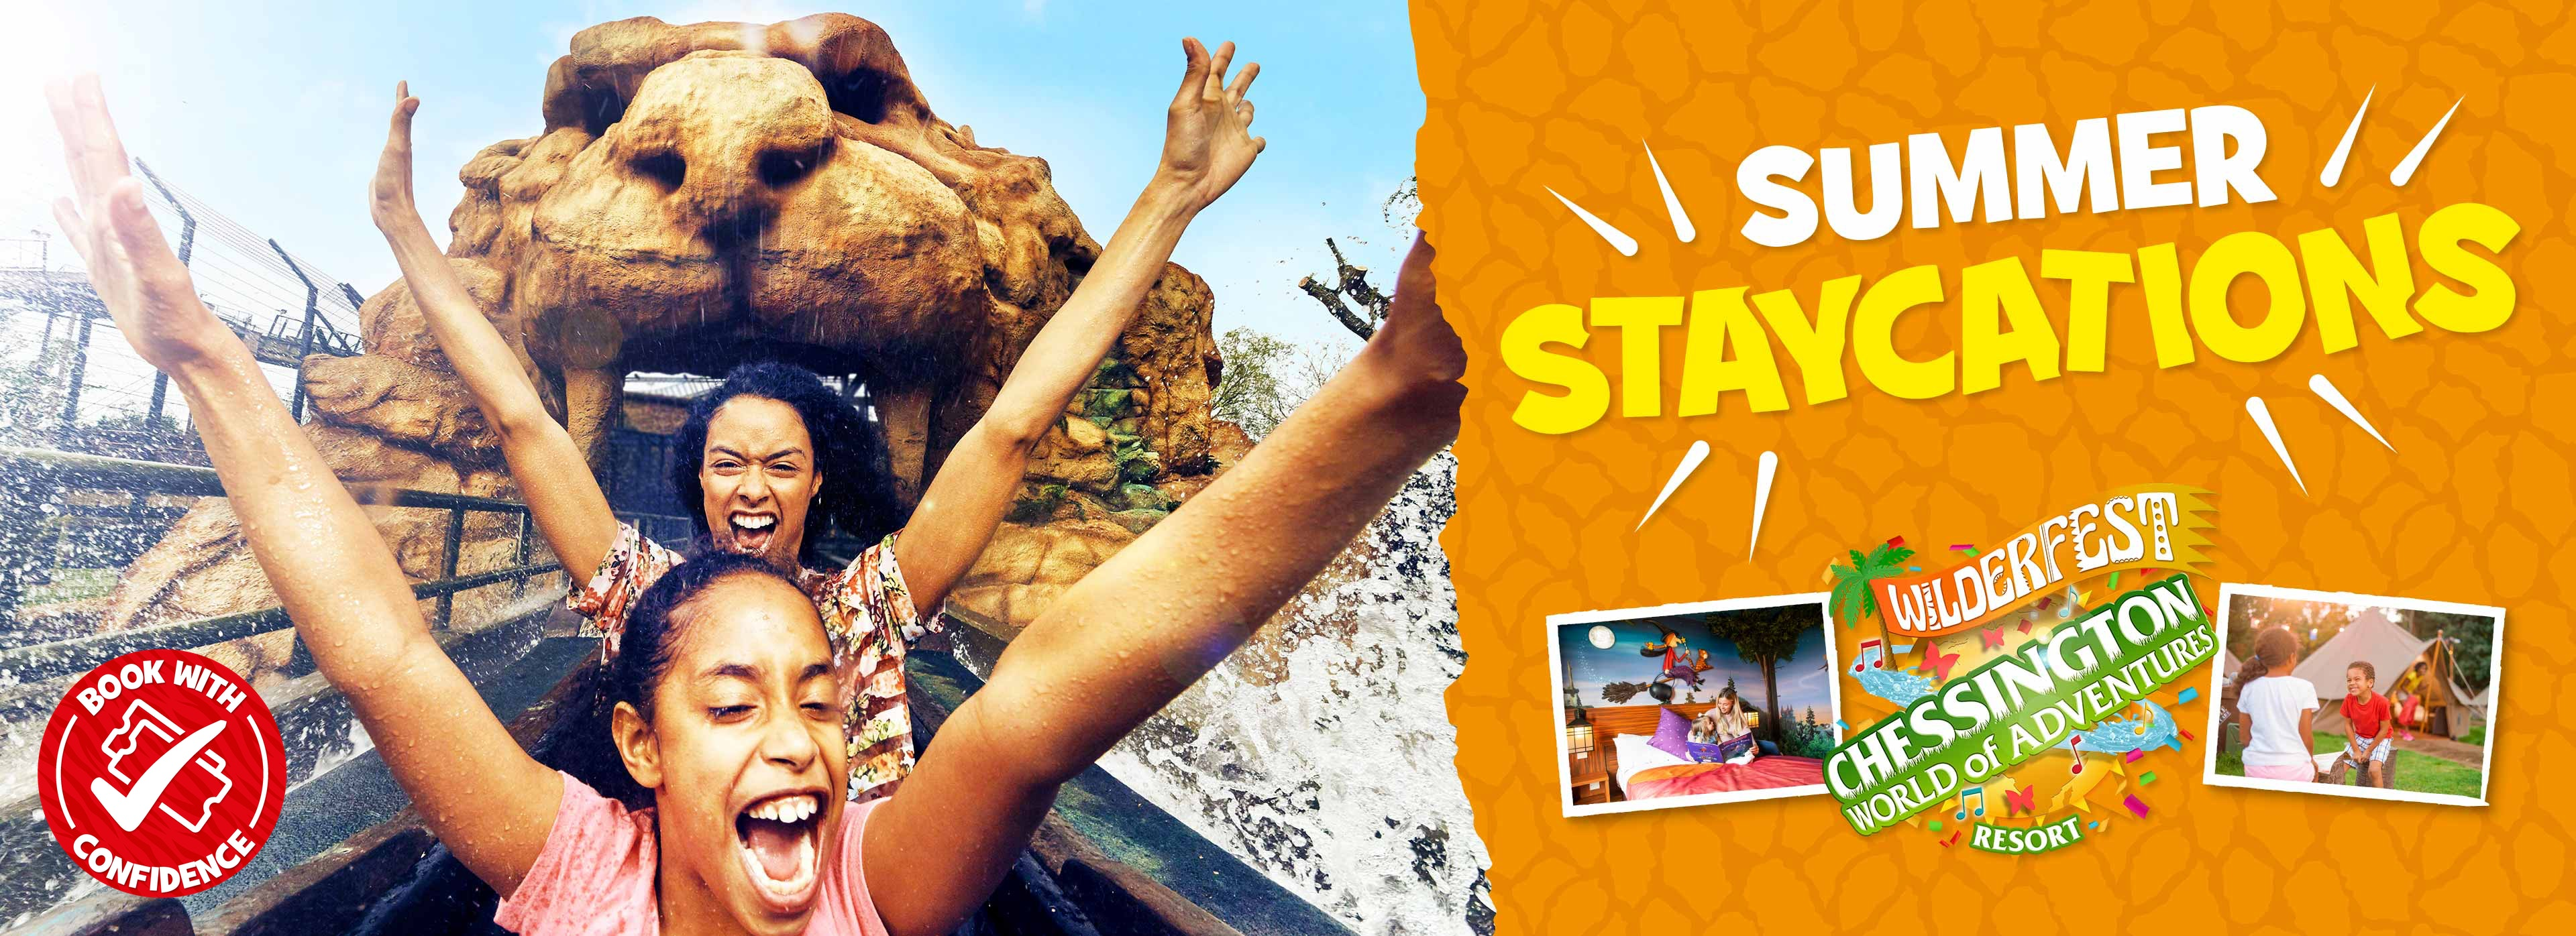 Roarsome staycations at Chessington World of Adventures Resort